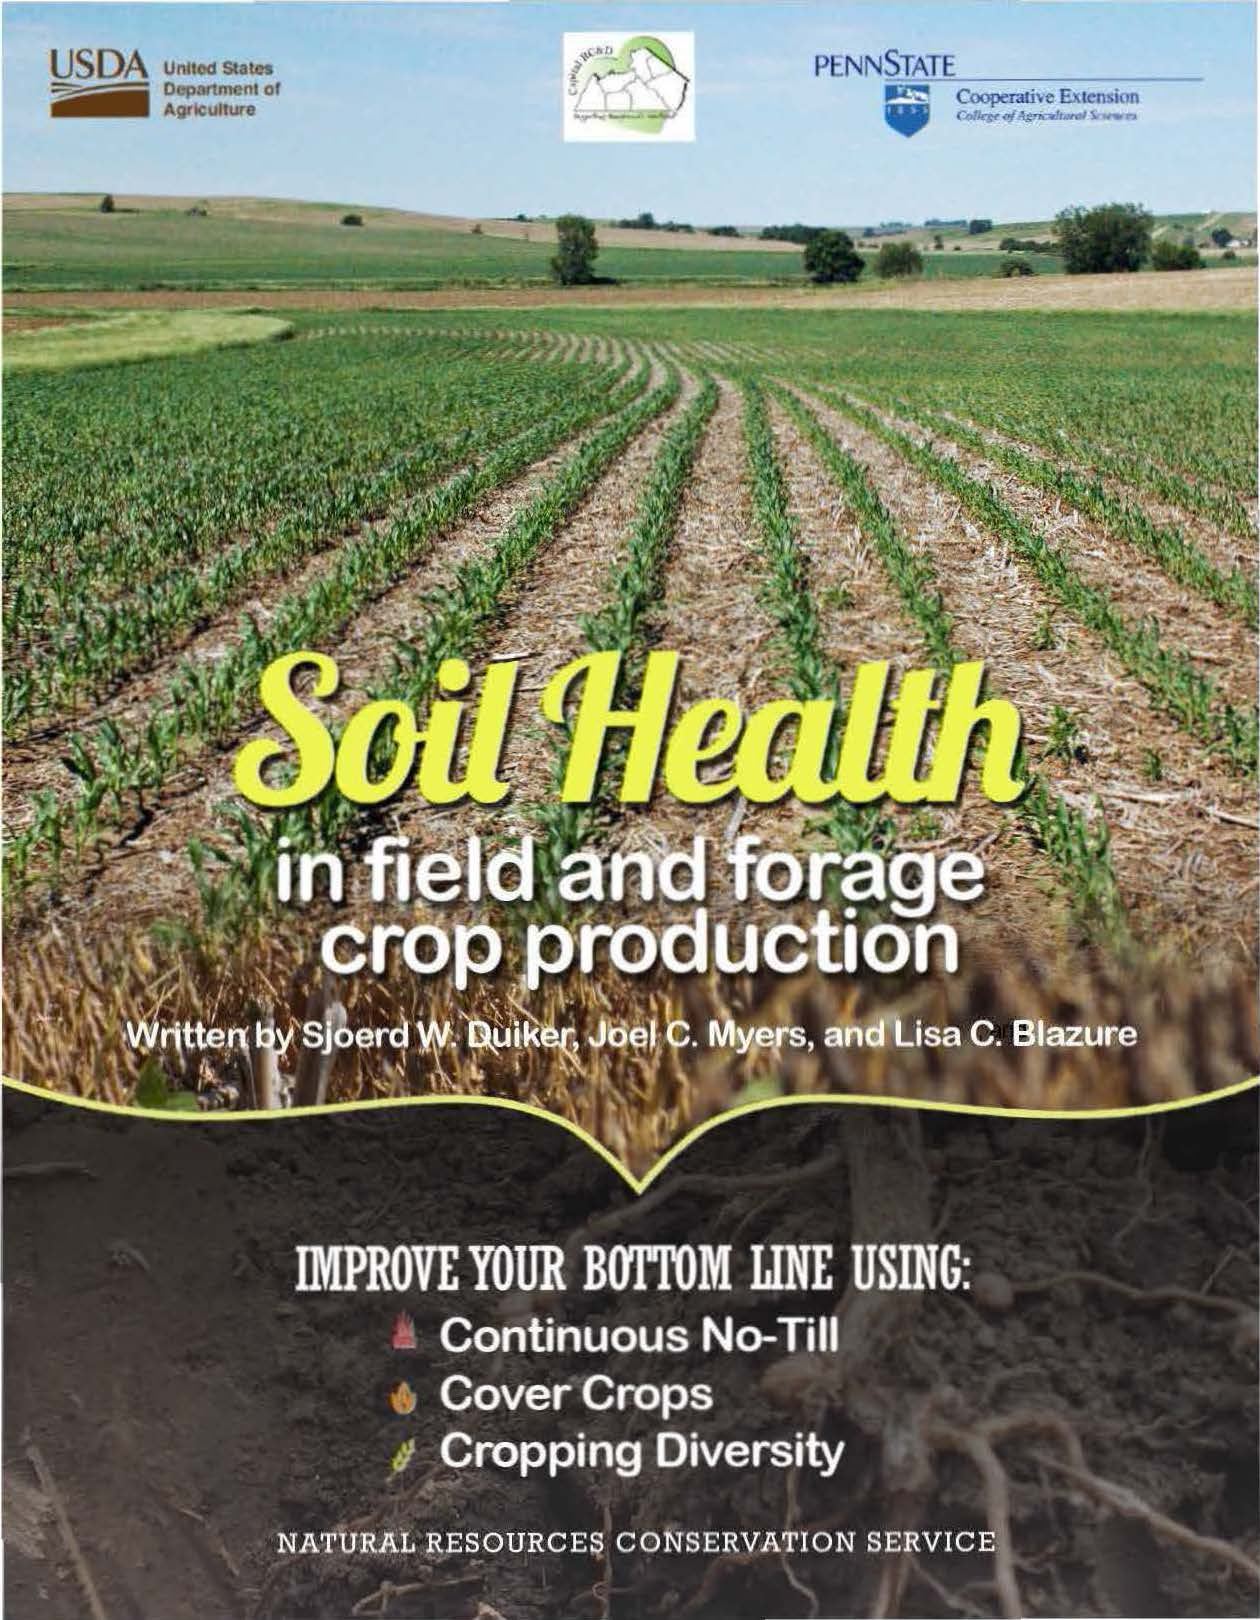 Soil Health Brochure